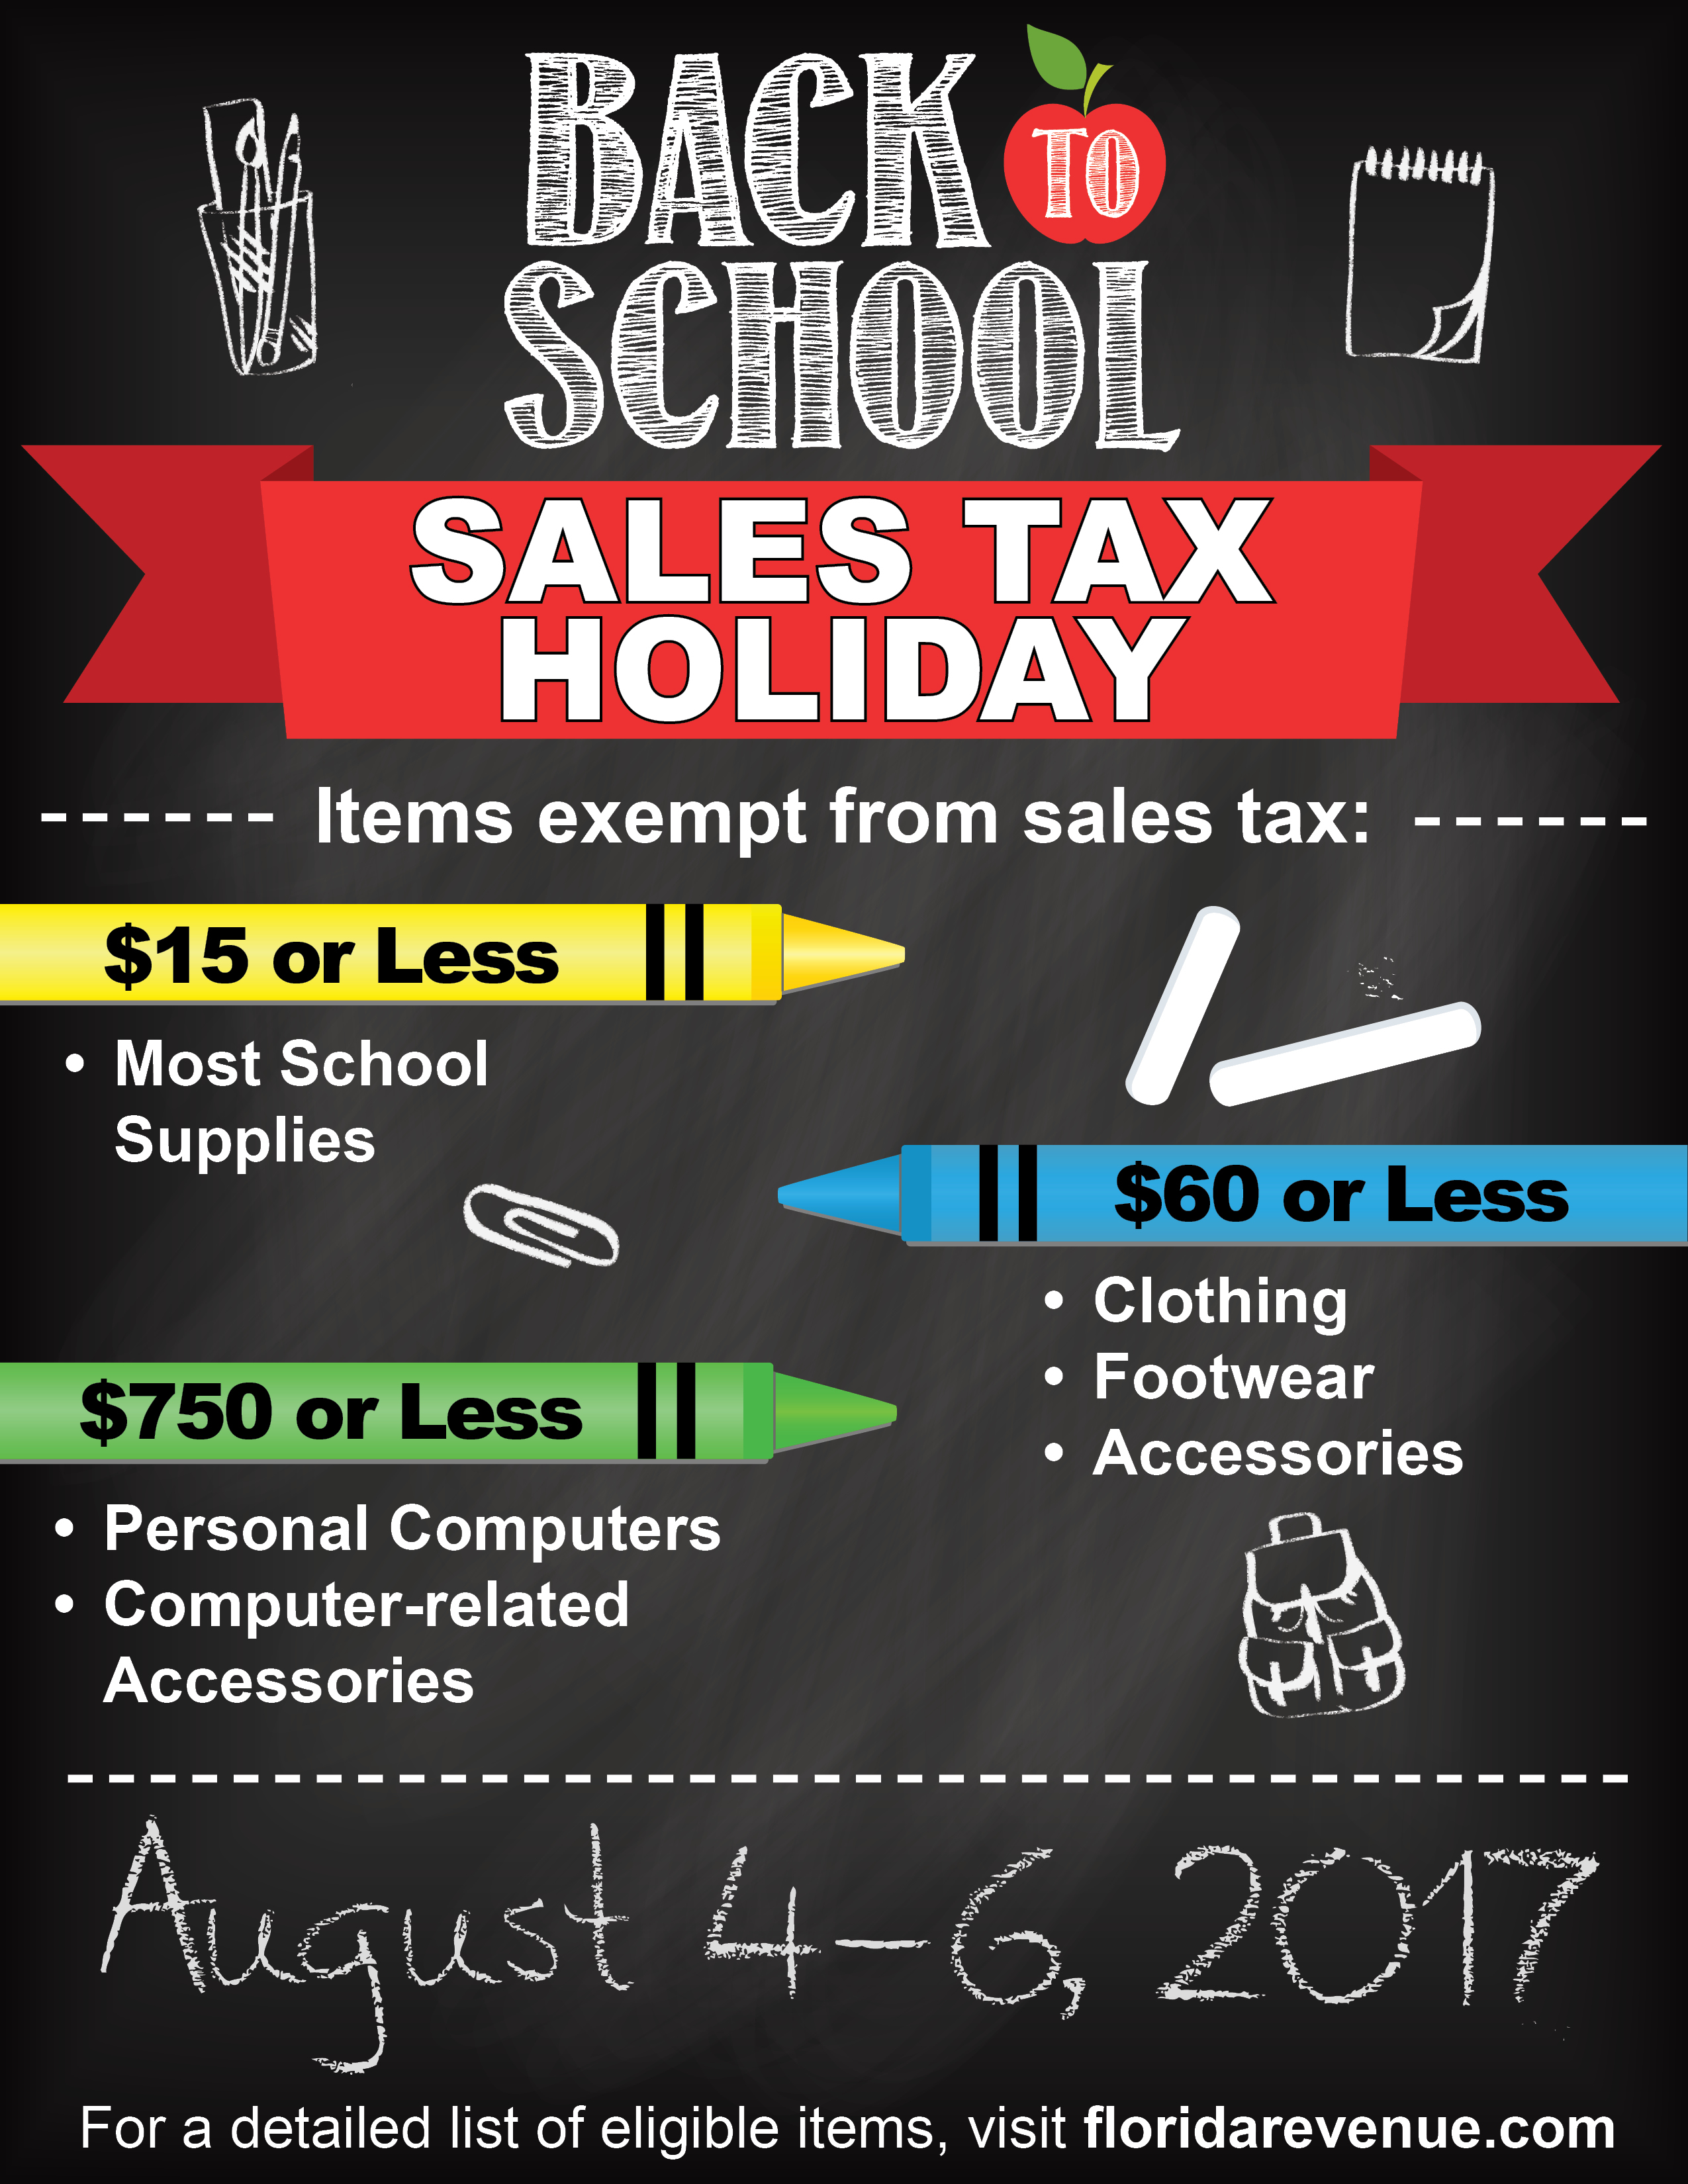 2018 Tax Free Holiday in Orlando for Back to School Shopping